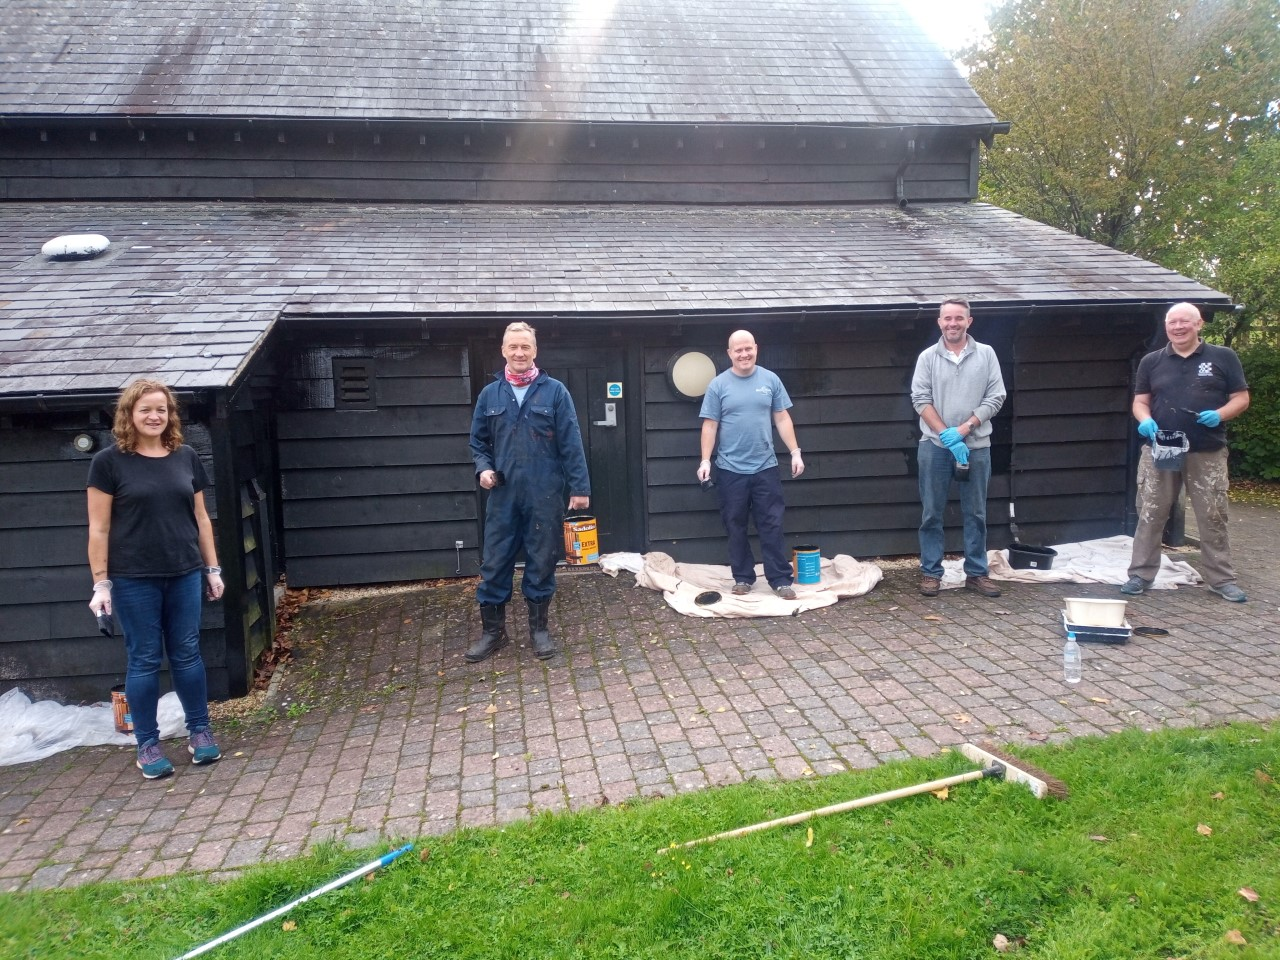 Thank You To The Volunteers At Ordnance Survey For Painting